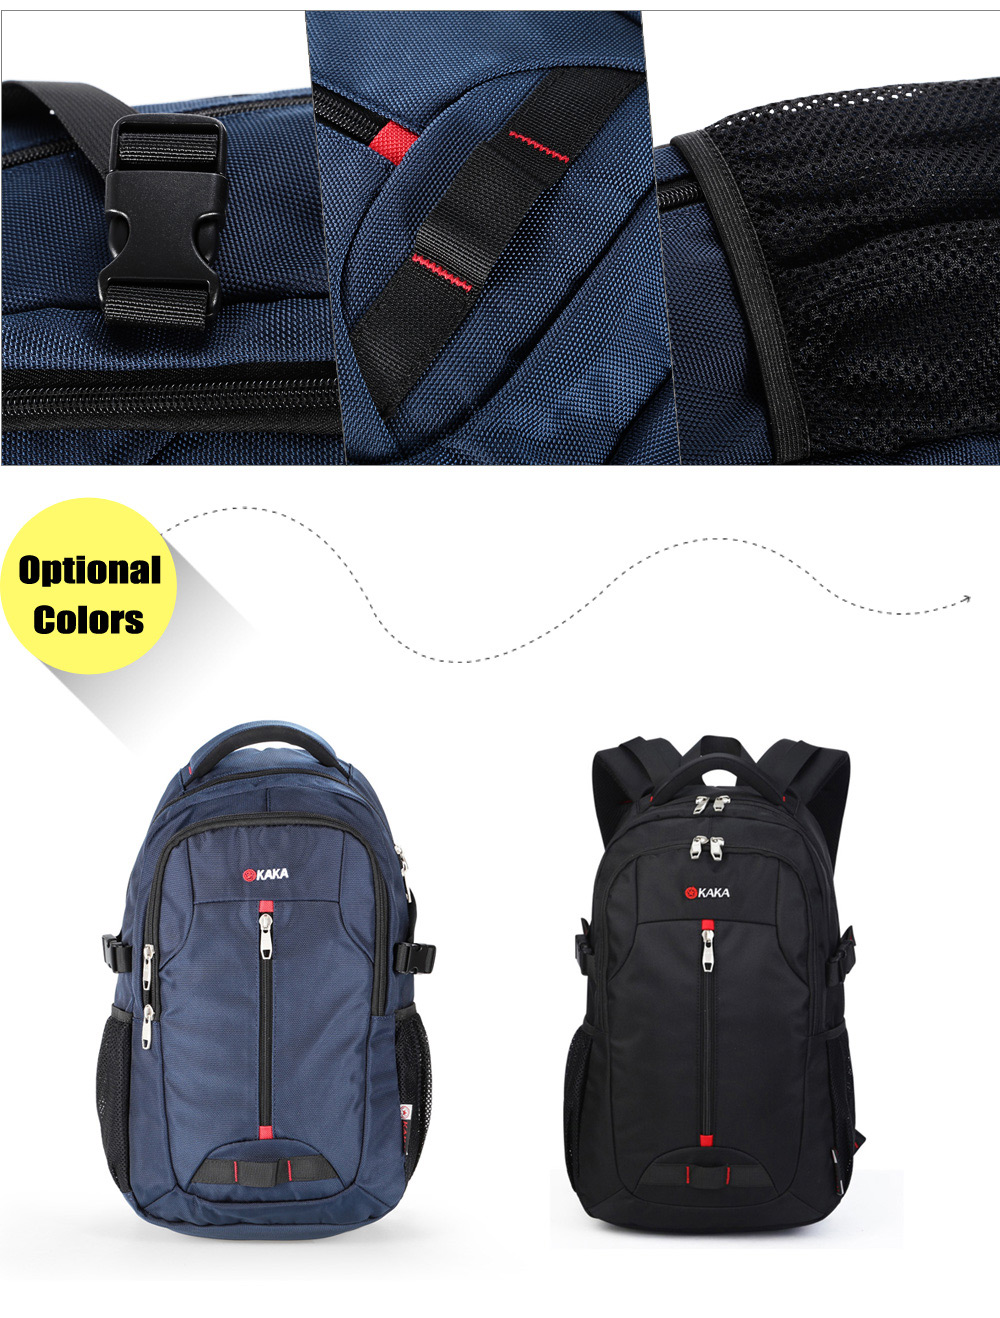 Kaka 88002 Oxford 25L Leisure Backpack 14 inch Laptop Bag with Nylon Lining